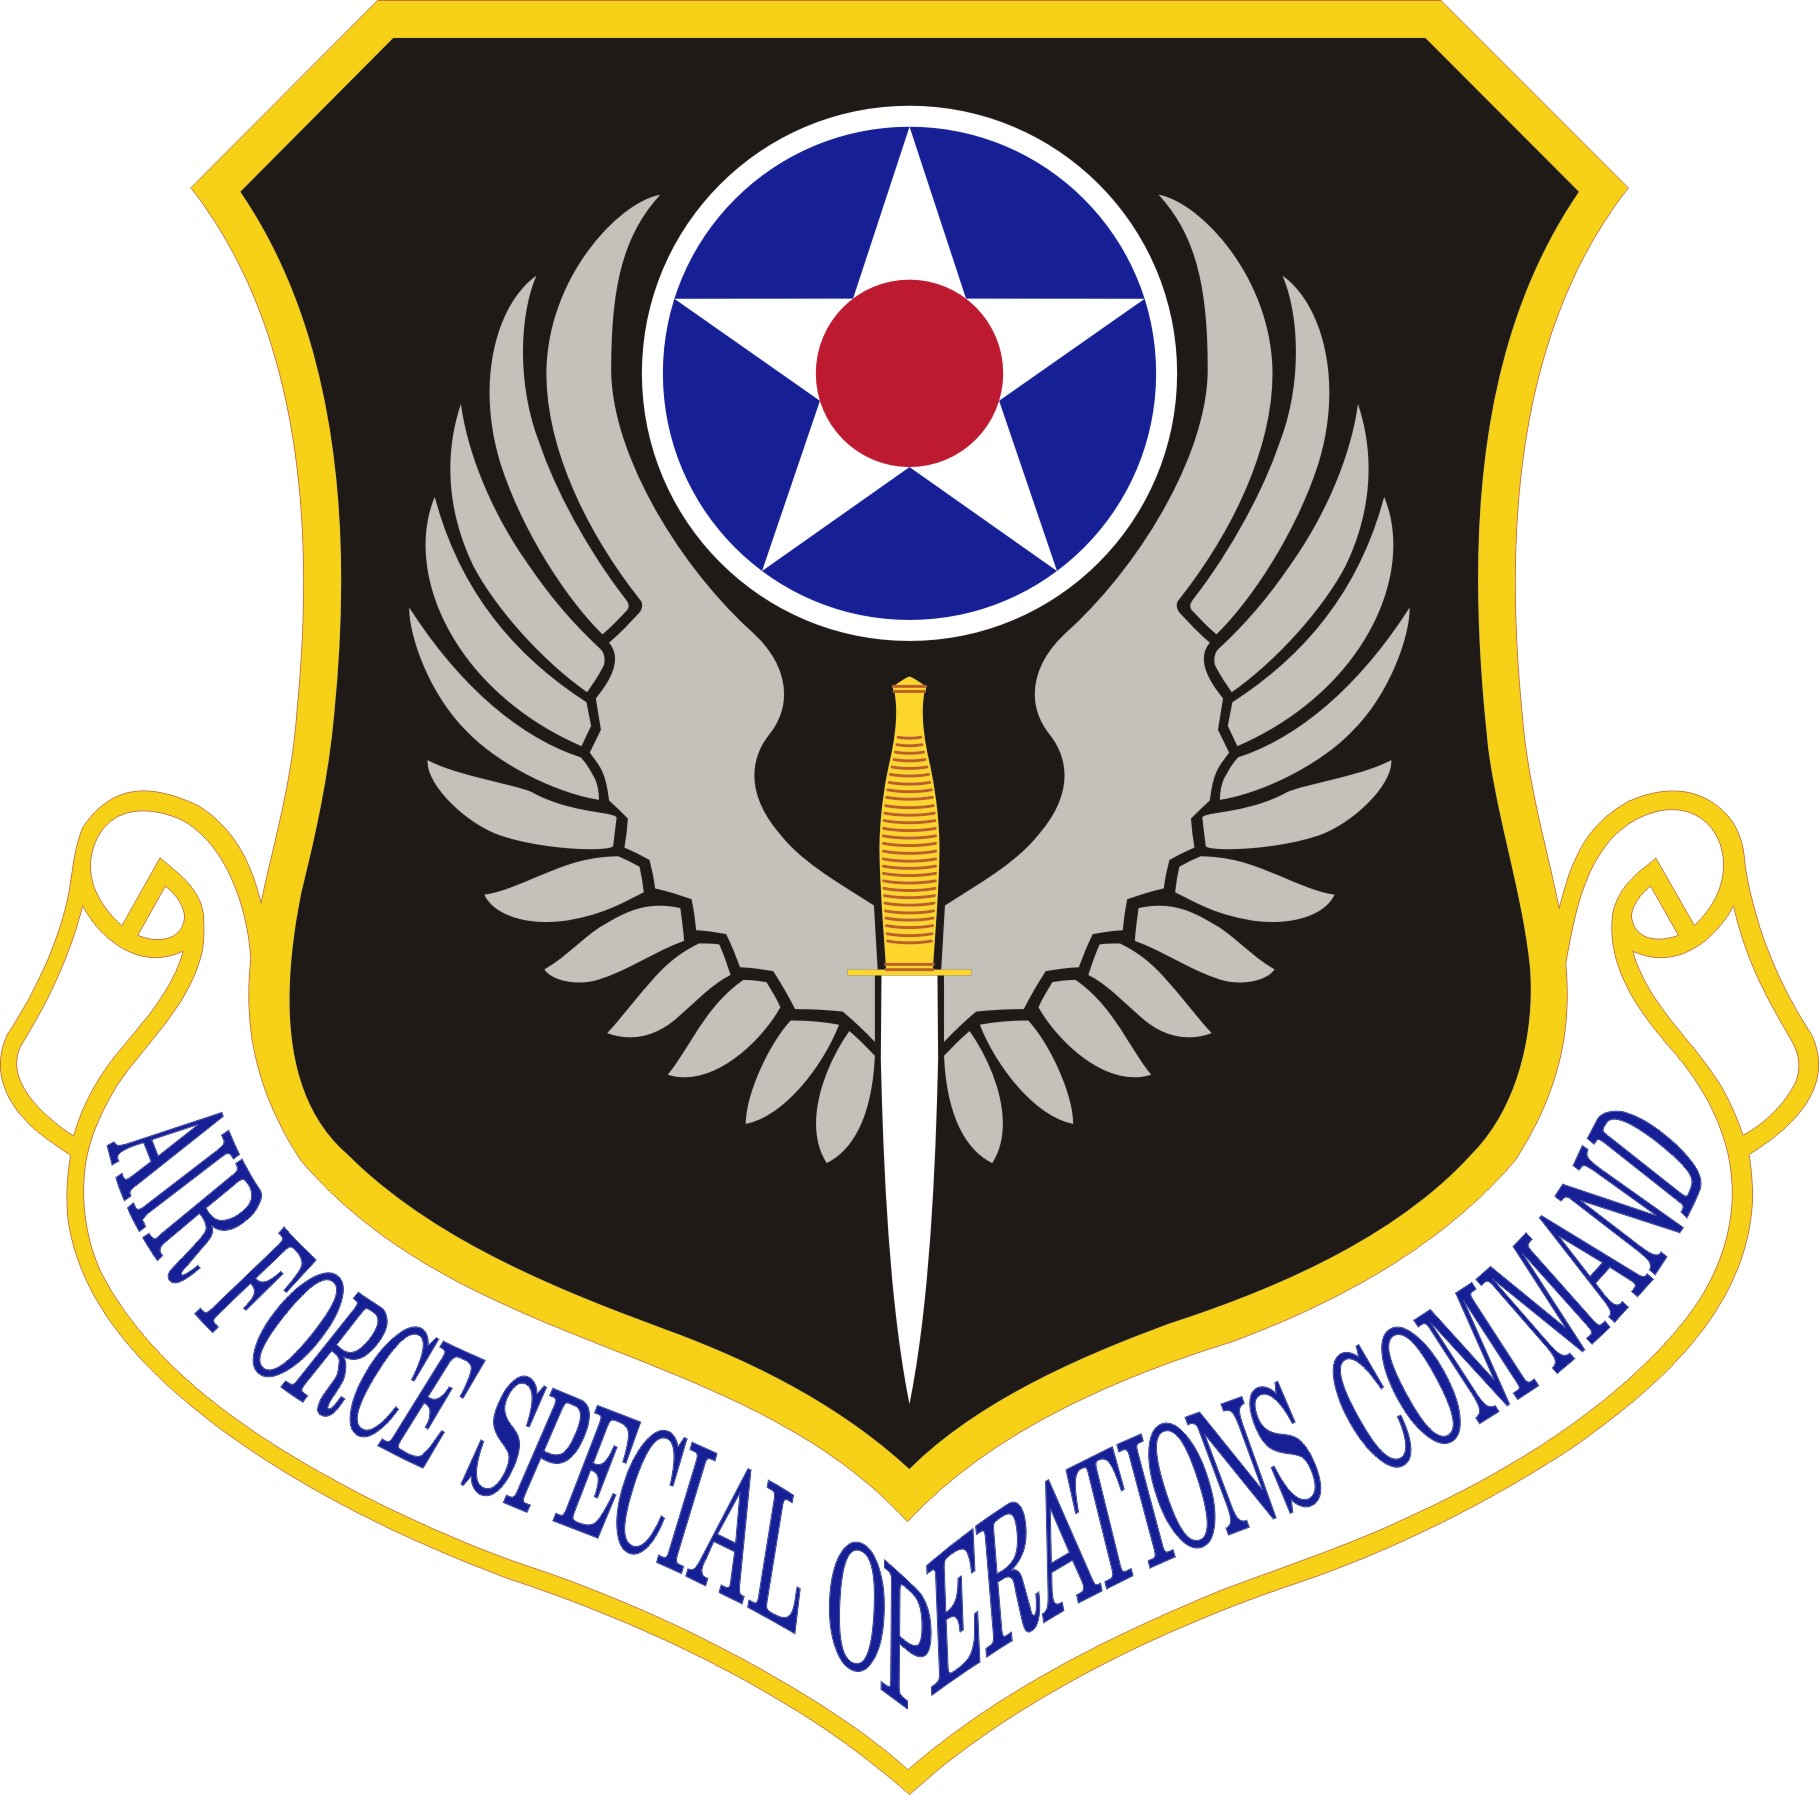 Air Force Special Operations Command Usaf Gt Air Force